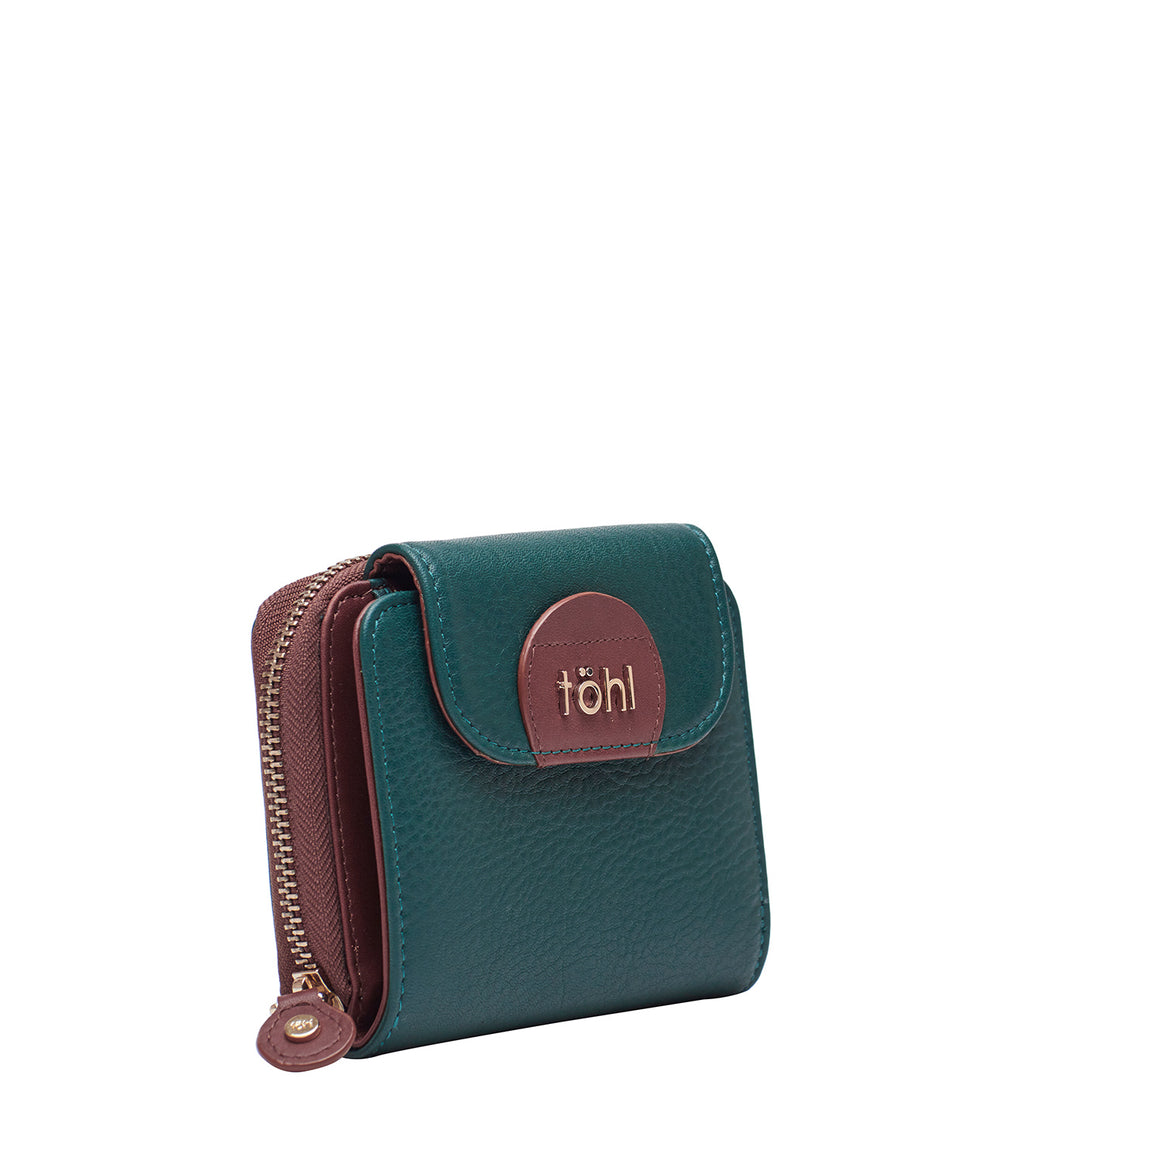 WT 0019 - TOHL COMPTON MINI WOMEN'S WALLET - FOREST GREEN